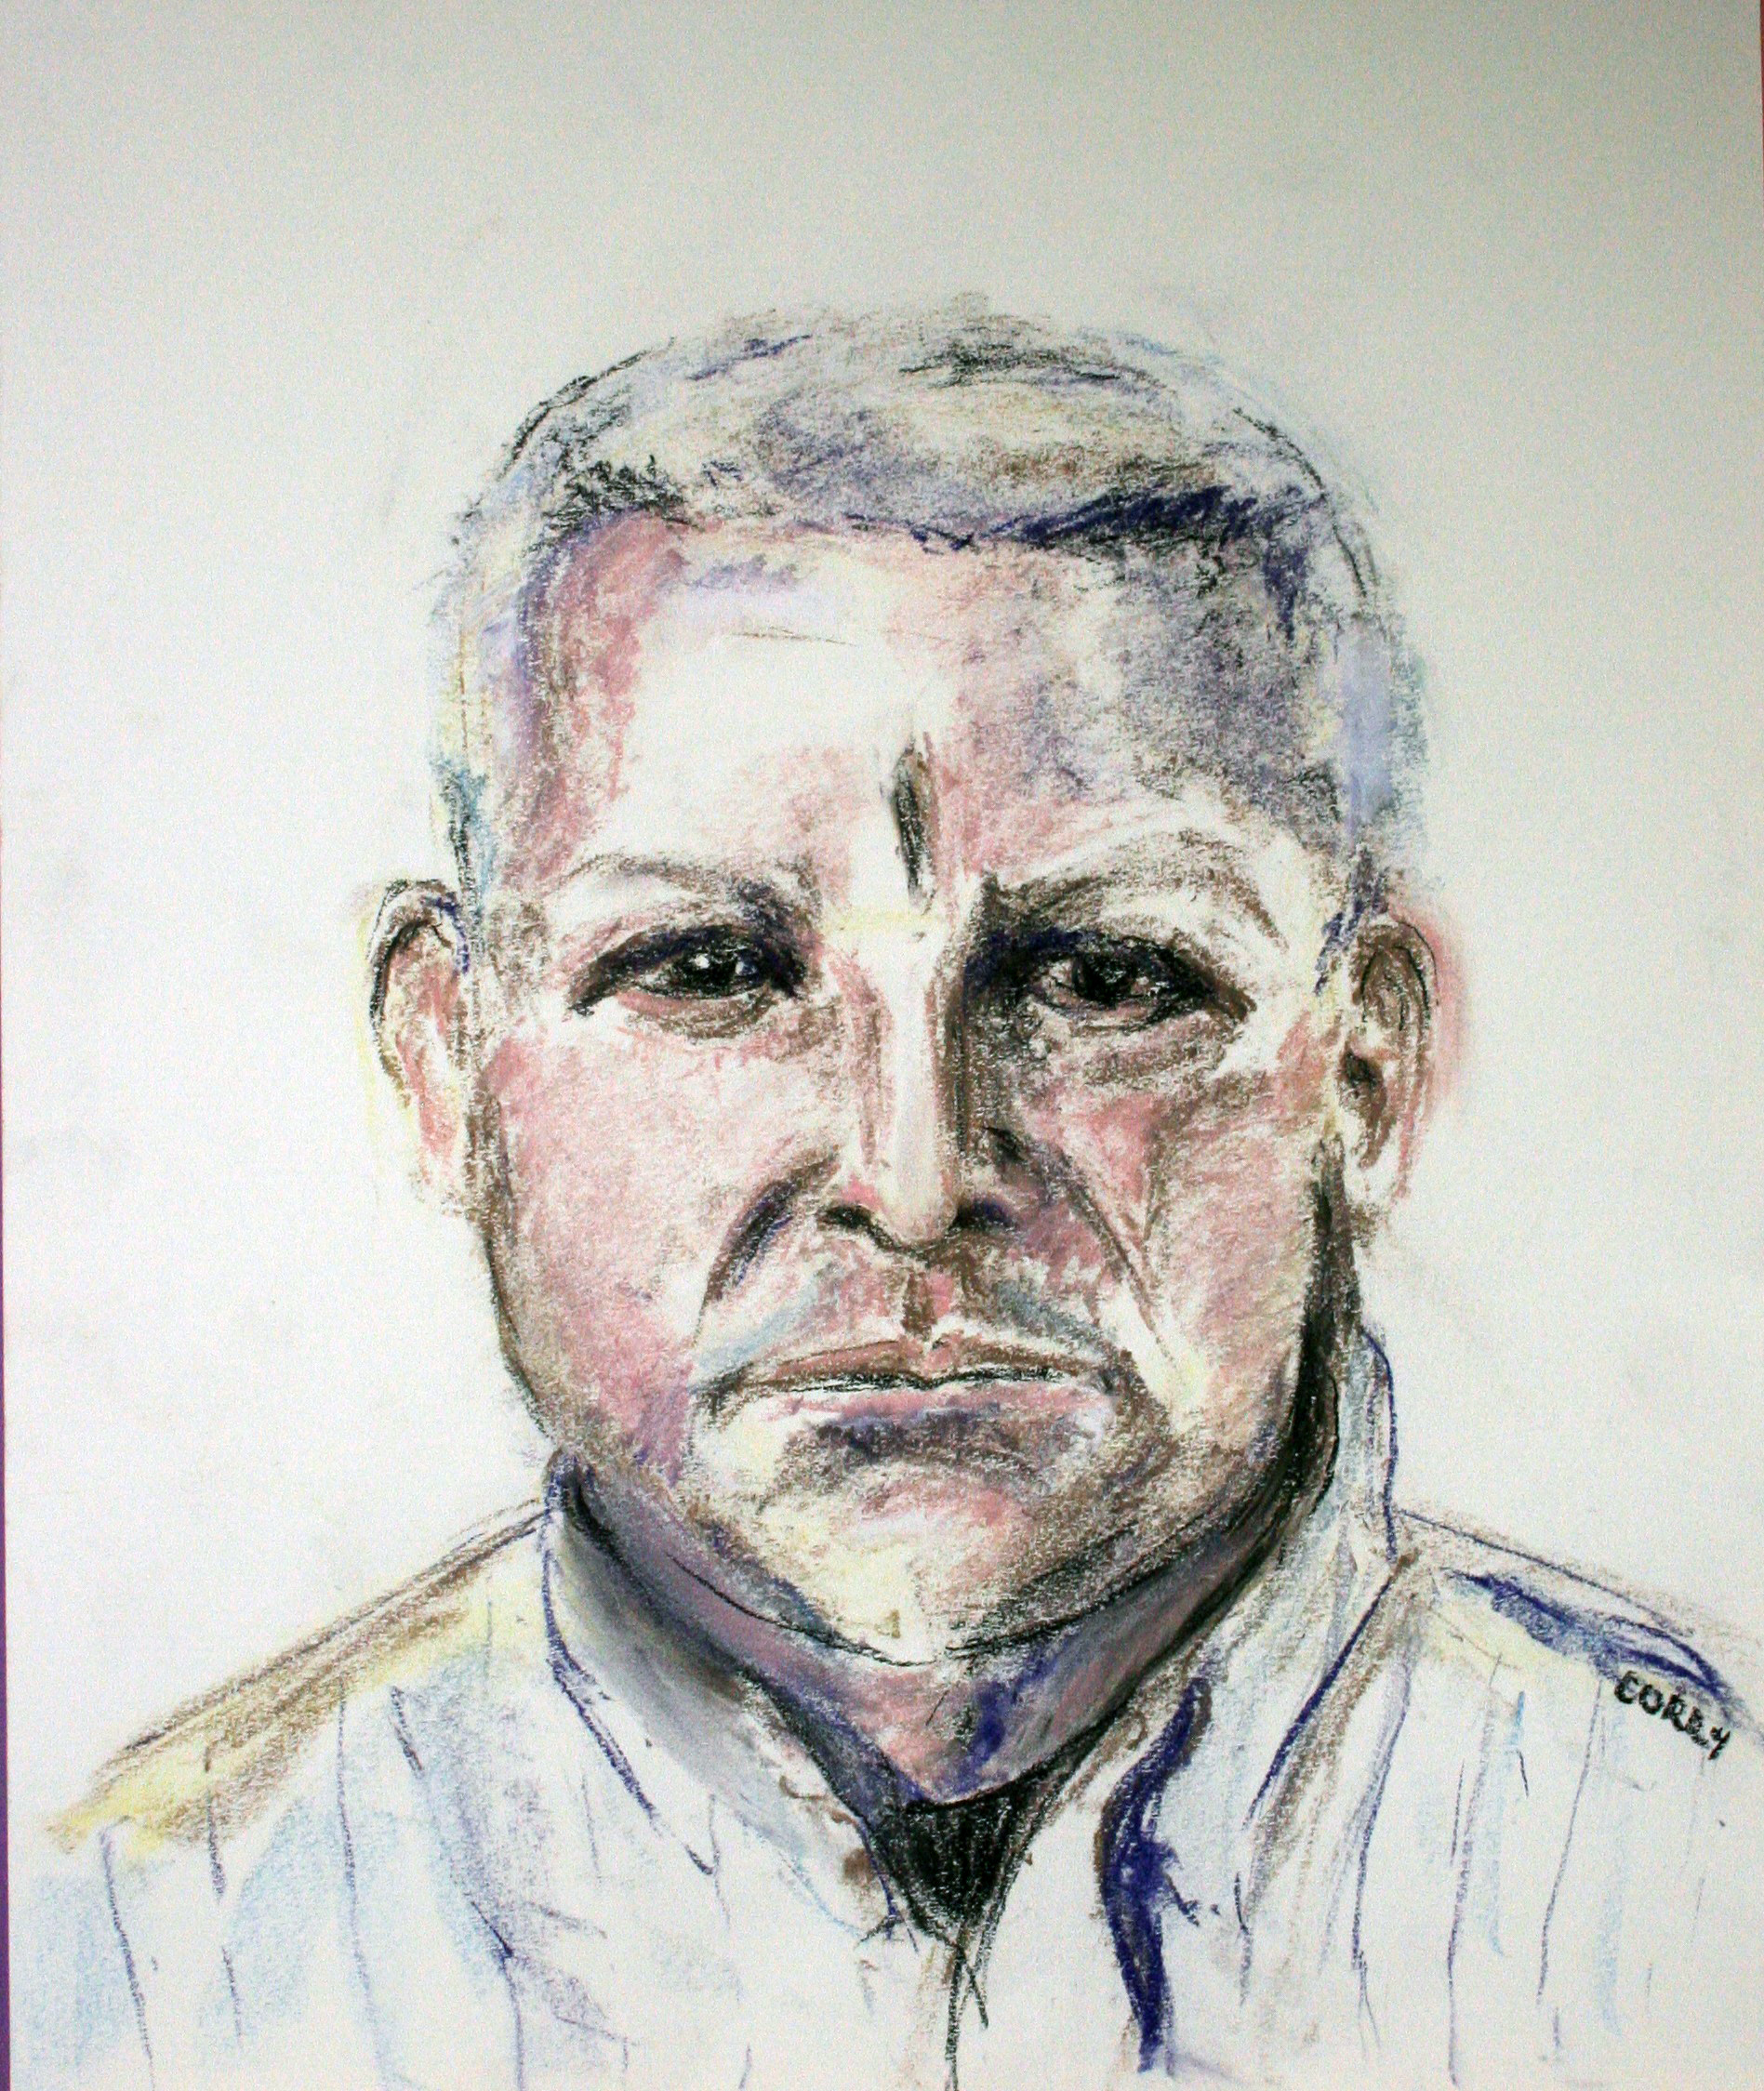 Corry Eisenberg Ogen did this drawing of her brother.